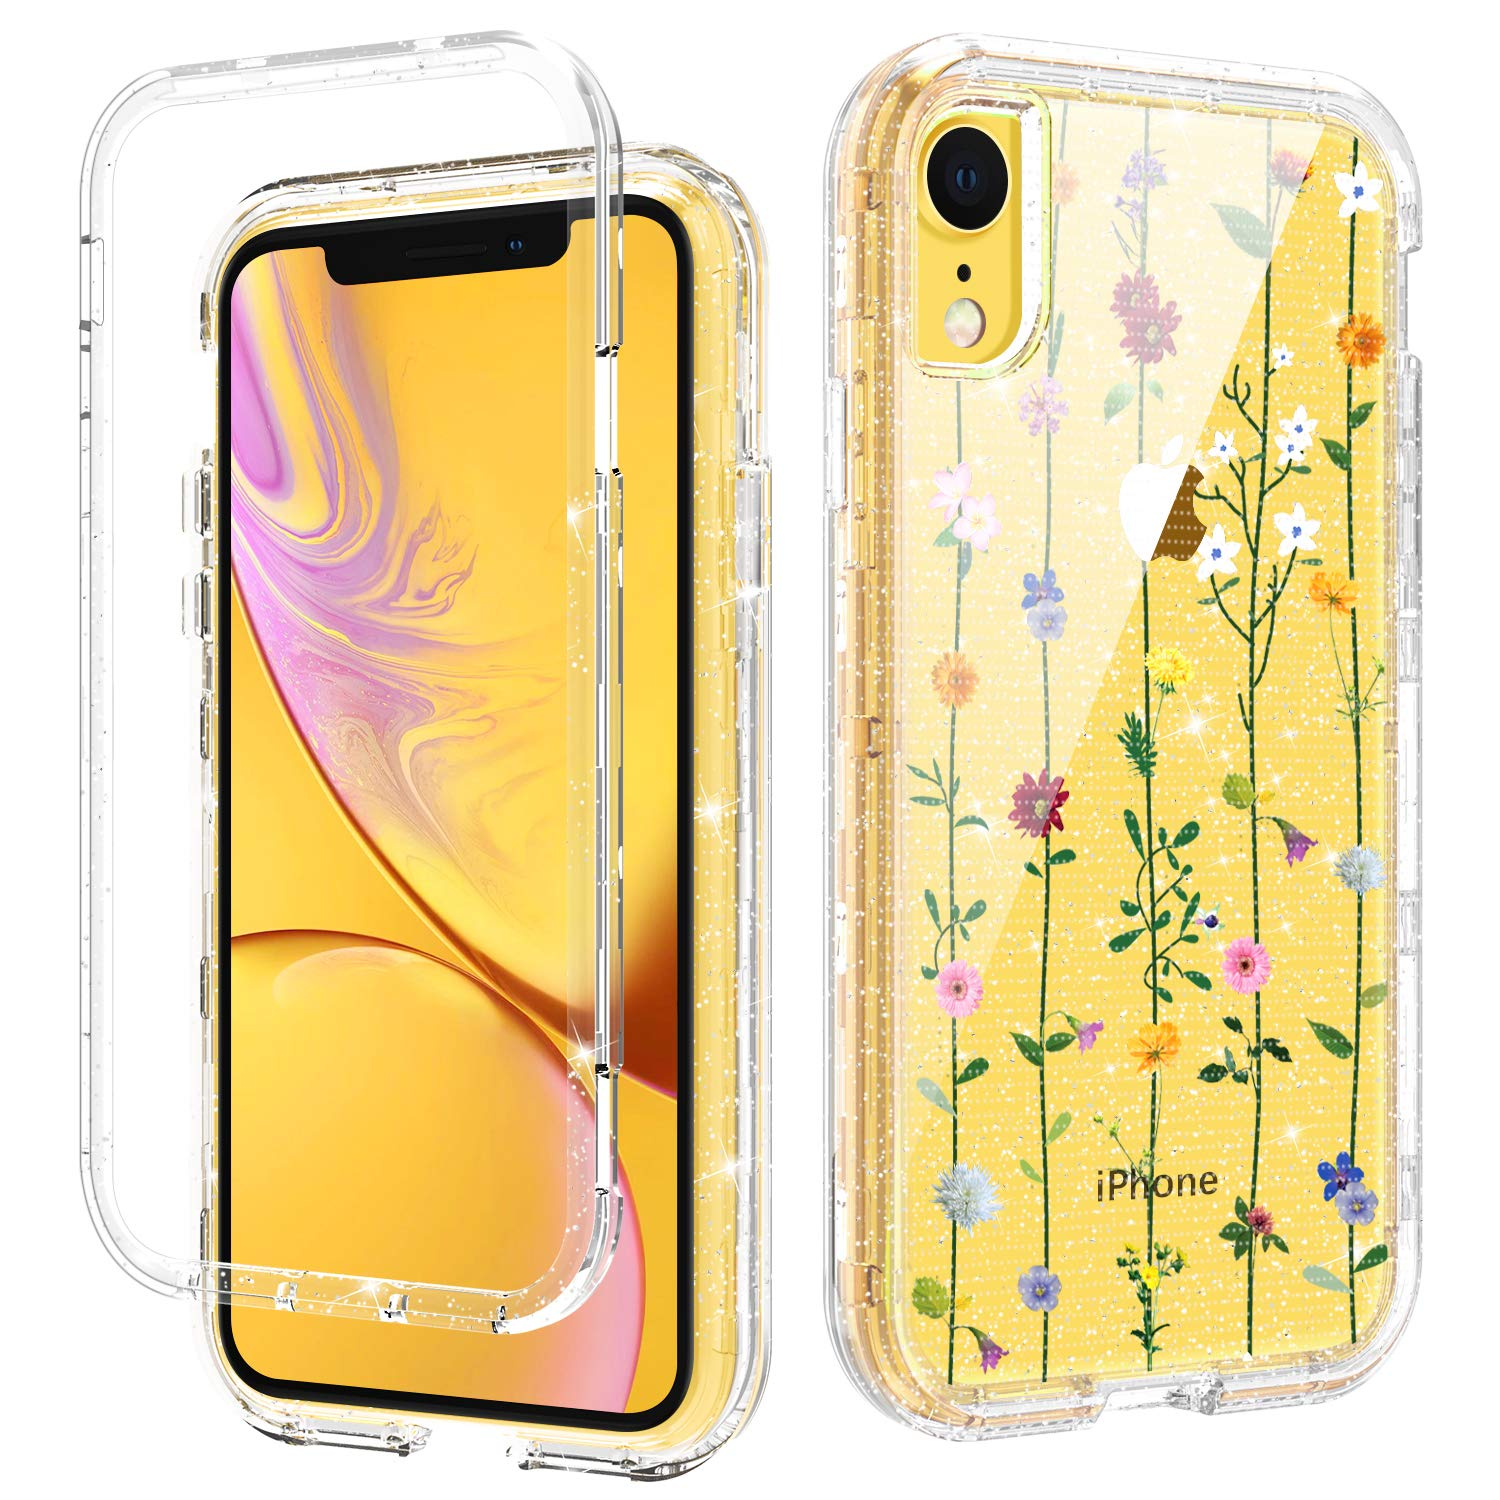 DOMAVER iPhone XR Case Floral, Clear iPhone XR Cases with Sparkle Wildflower for Girls Women 3 in 1 Hybrid Transparent Hard PC Flexible Rubber Cover Shockproof Protective Phone Cases, Flower String